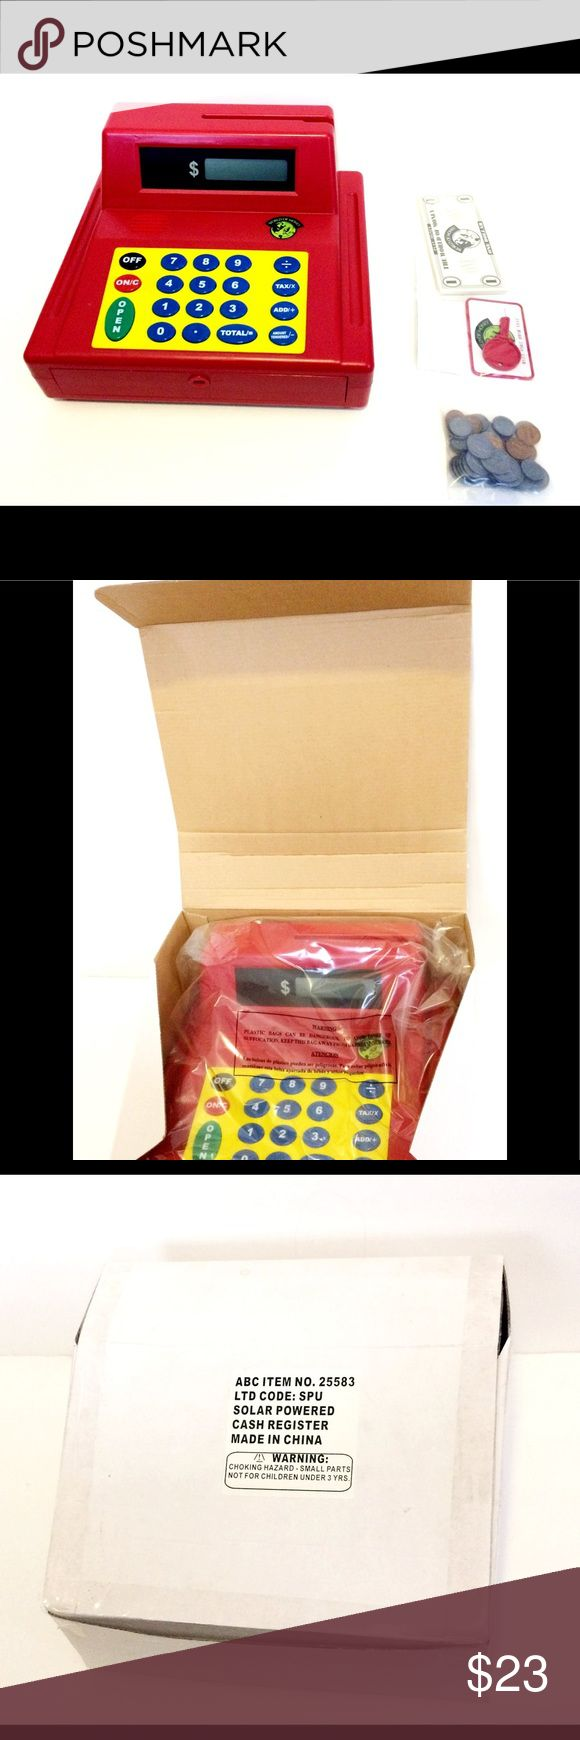 Calculator Learning Play Solar Power Cash Register Calculator Learning Play Solar Power Cash Register Other